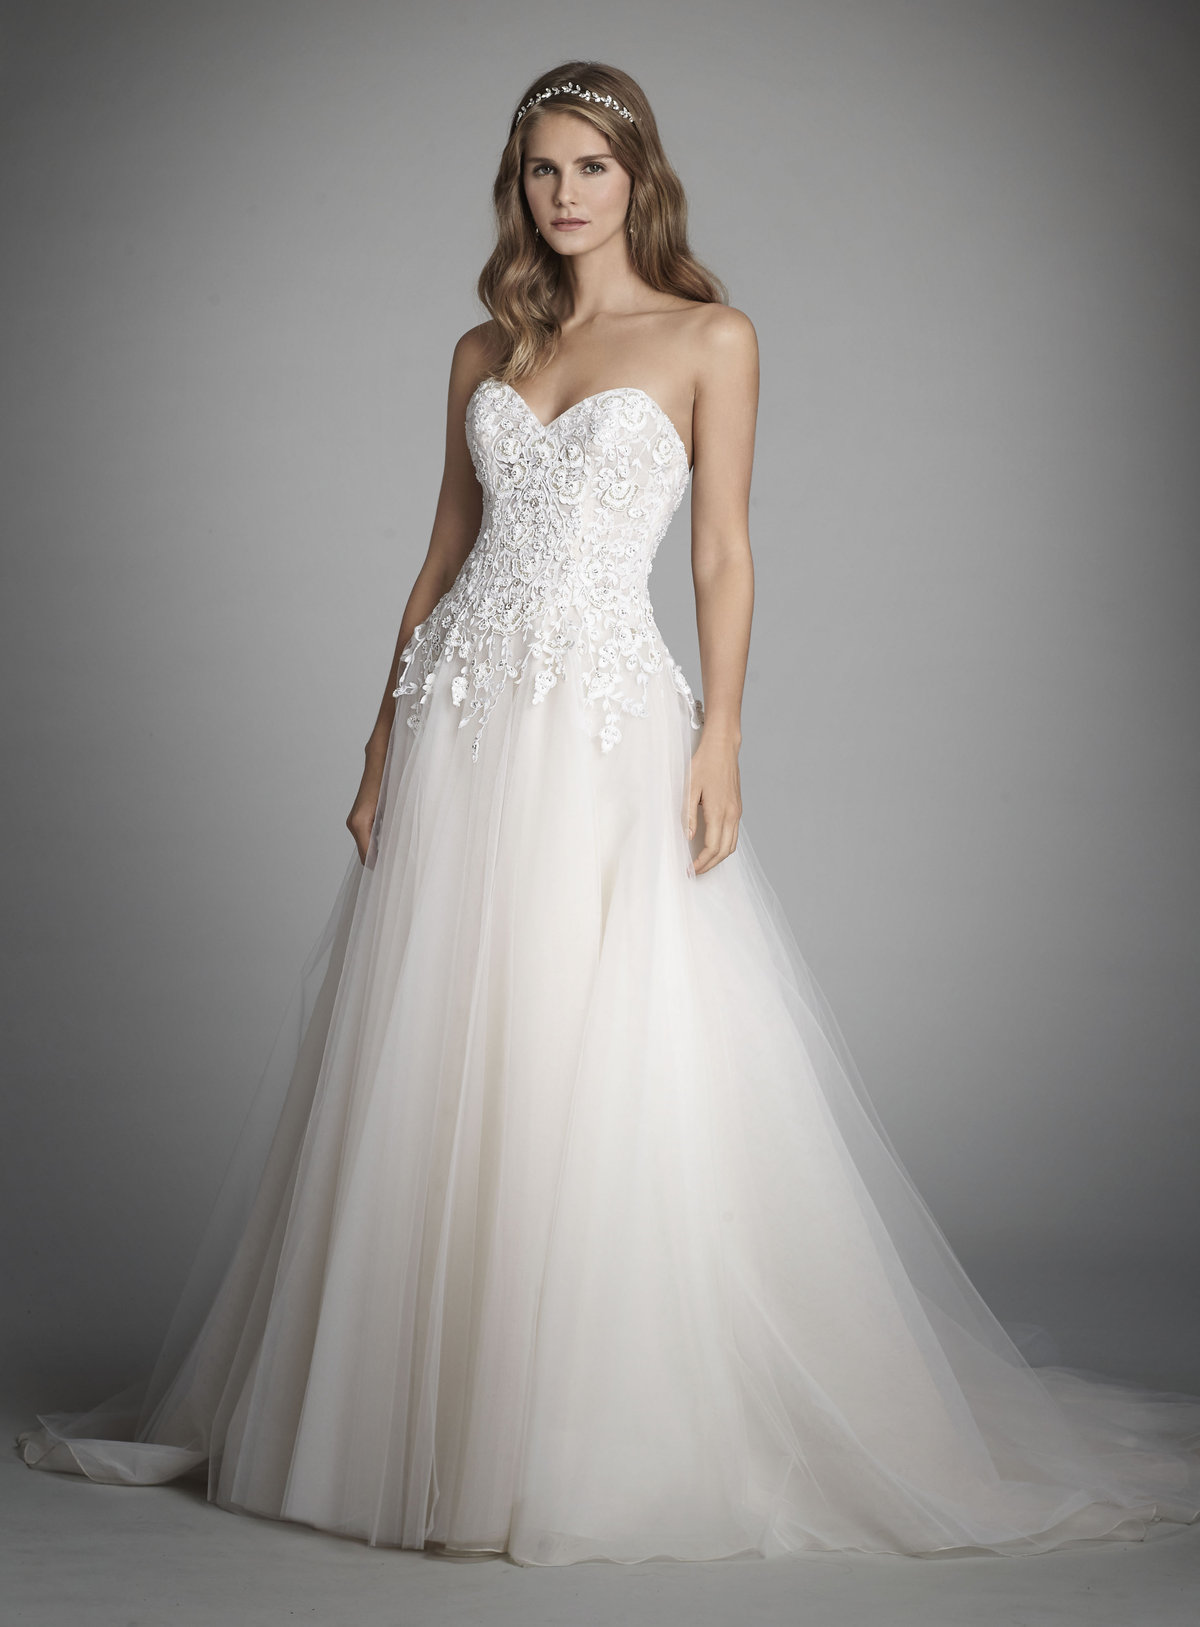 Bridal Gowns And Wedding Dresses By JLM Couture Style 9702